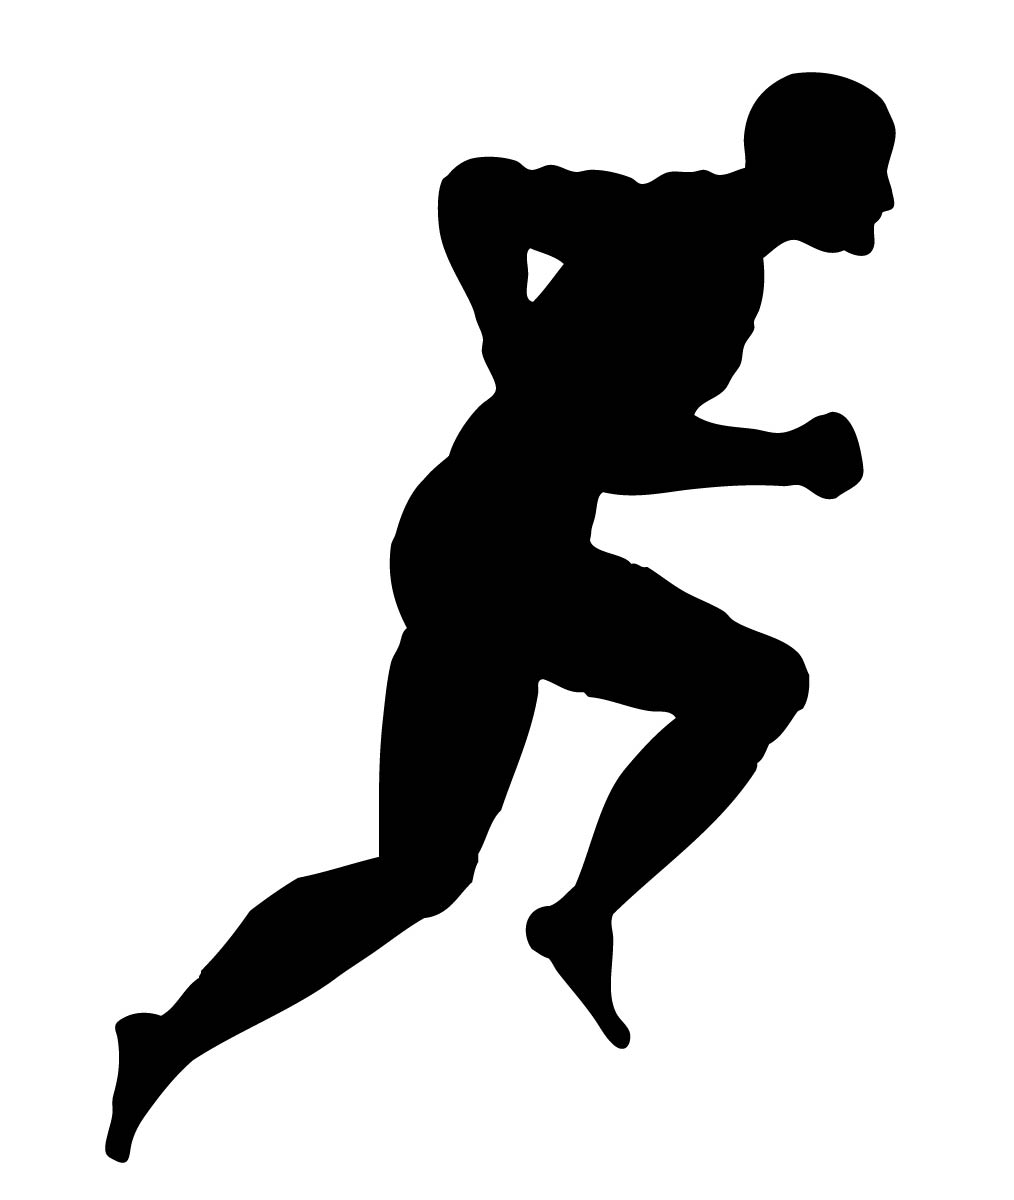 Running Silhouette Clipart - Clipart Suggest